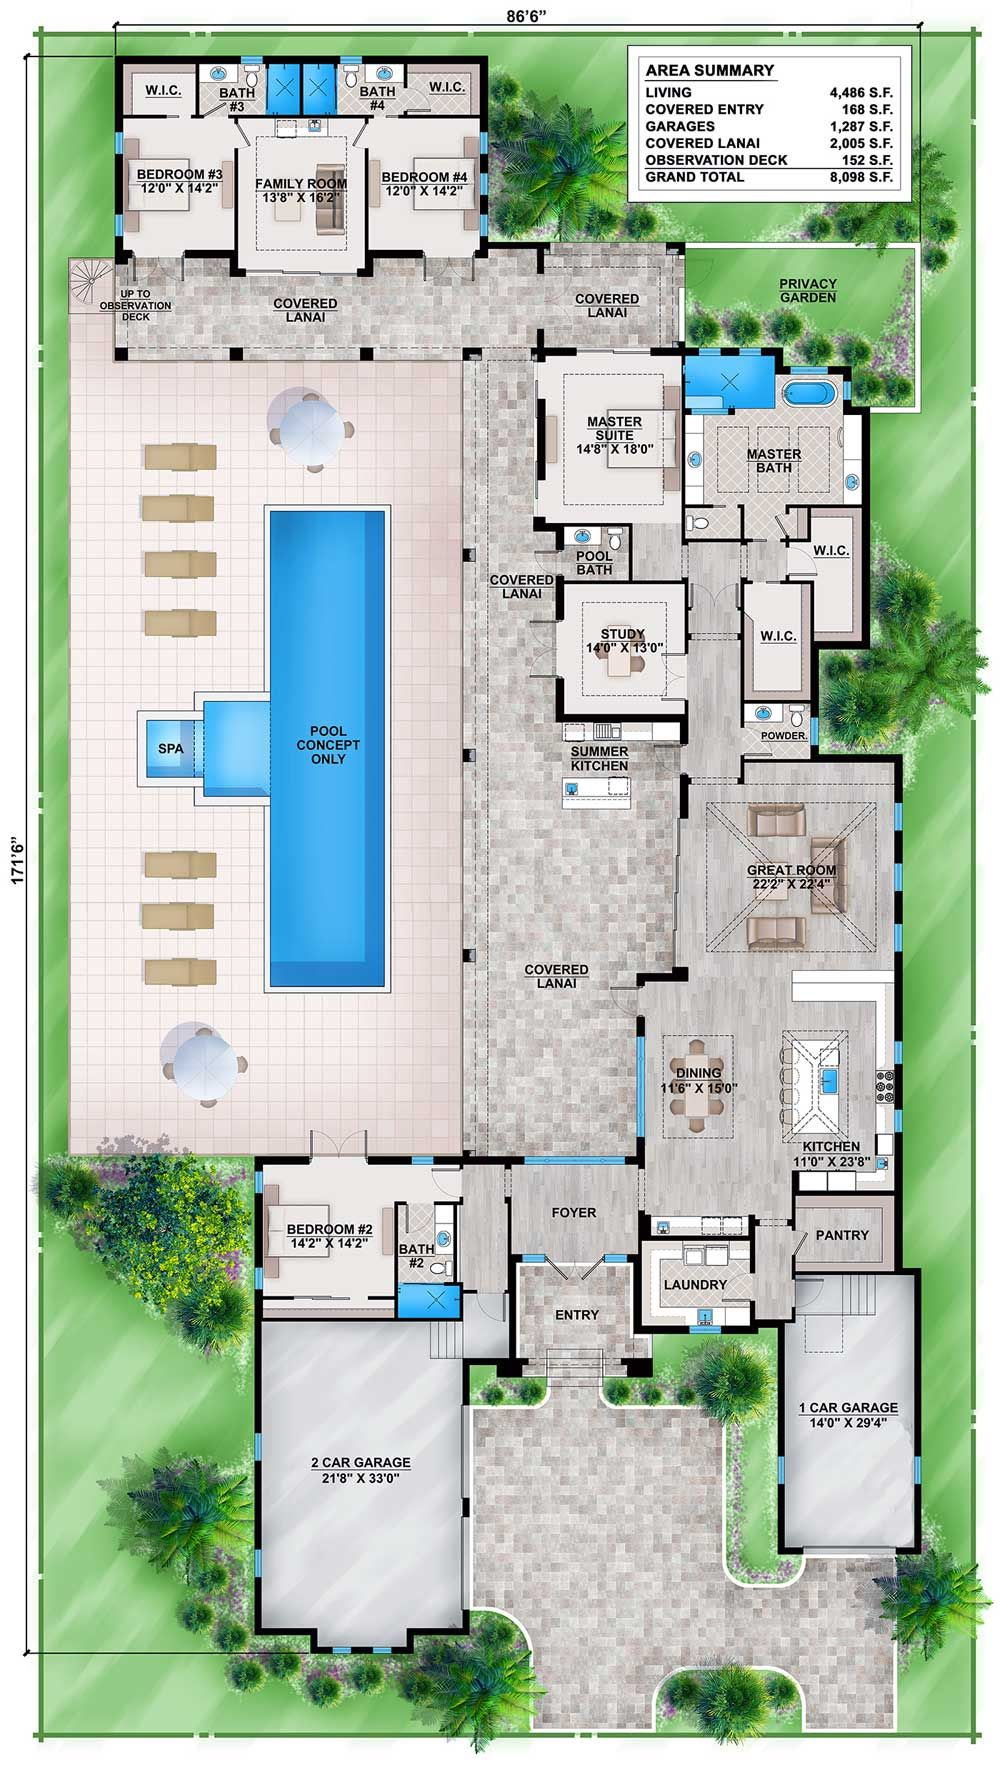 Florida house plan with guest wing 86030bw florida tuscan luxury 1st floor master suite butler walk in pantry cad available